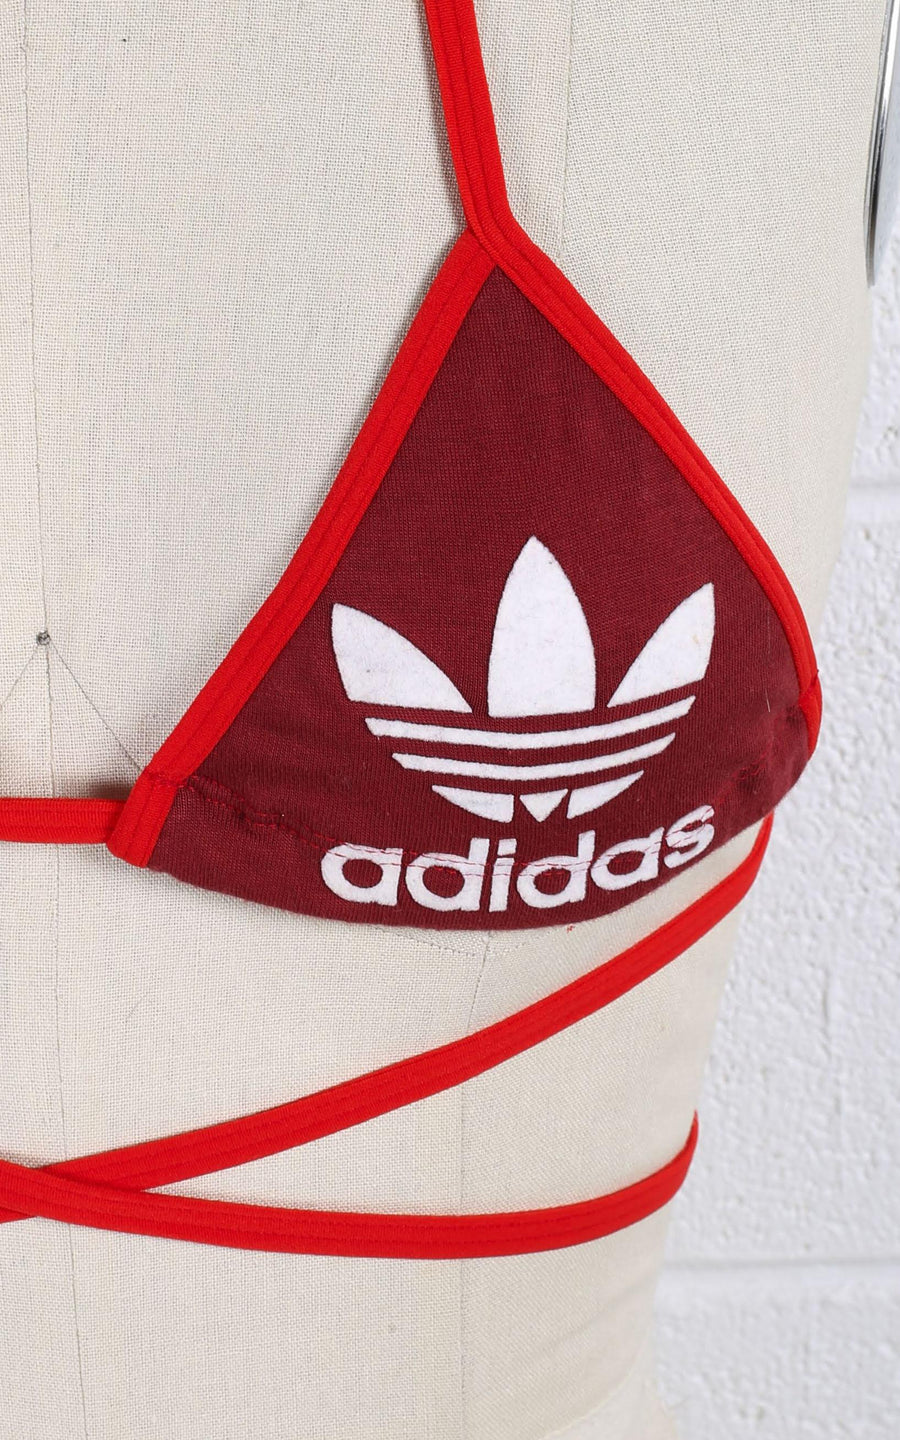 Vintage Rework Adidas Triangle Top - XS